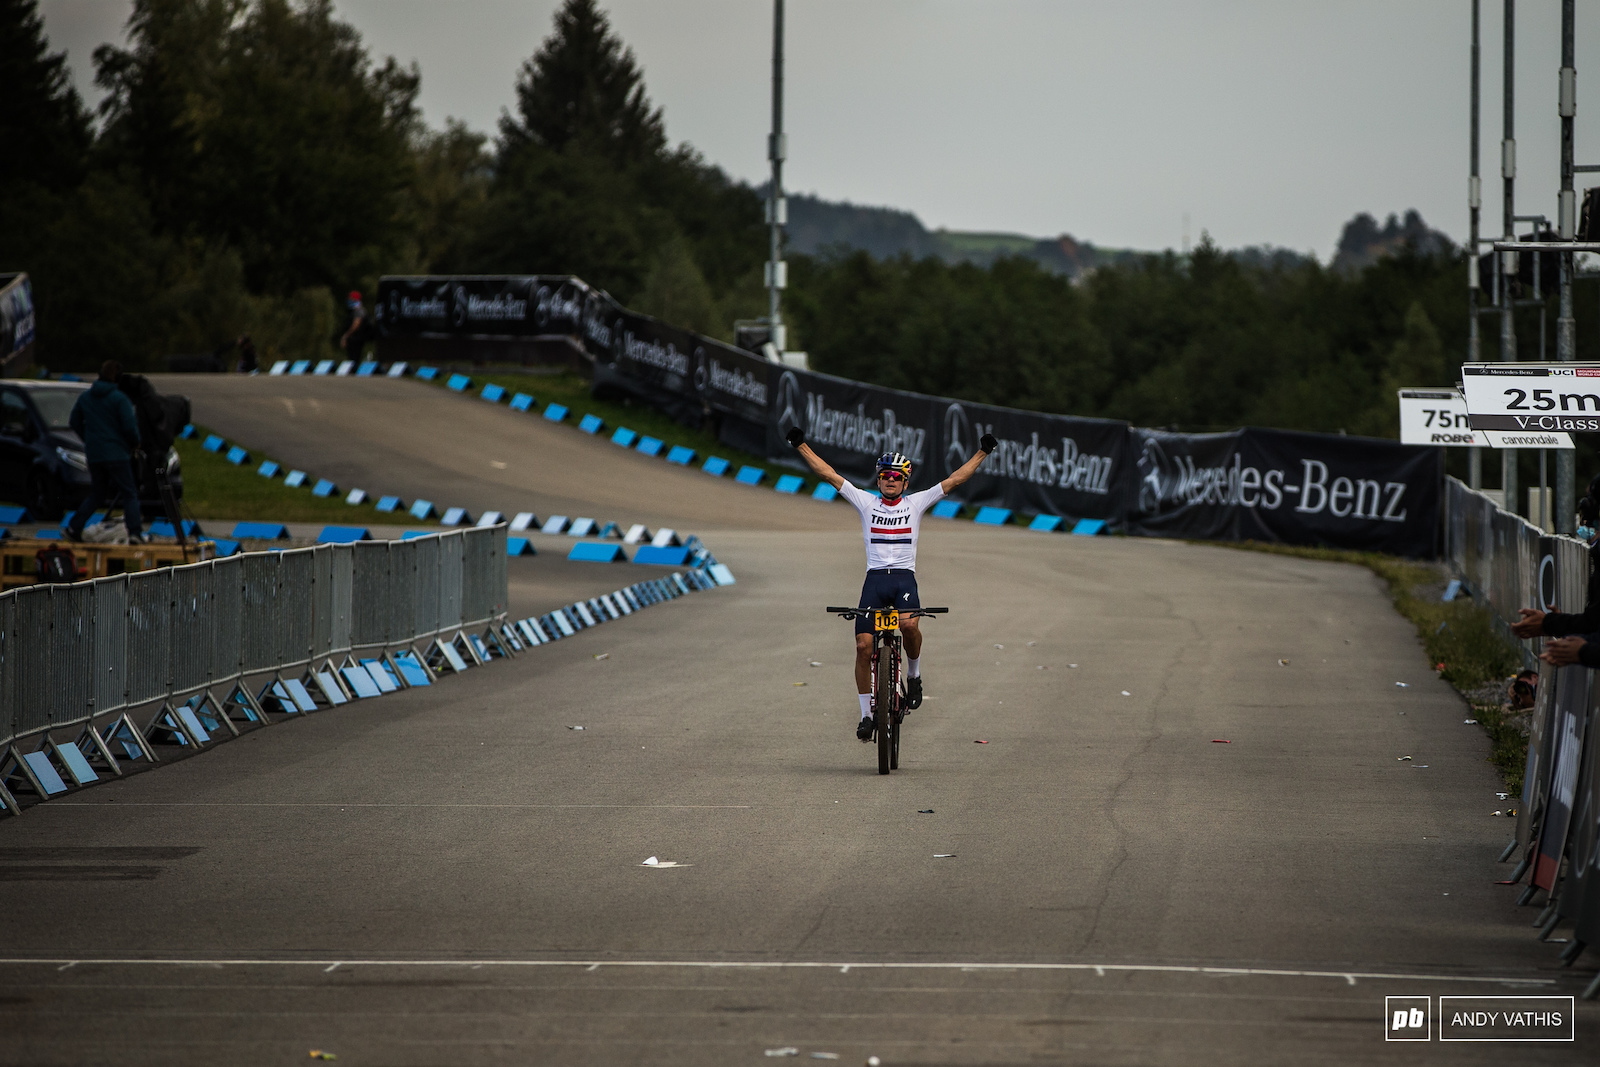 A clean sweep in Nove Mesto for Pidcock. Incredible racing from this young man.